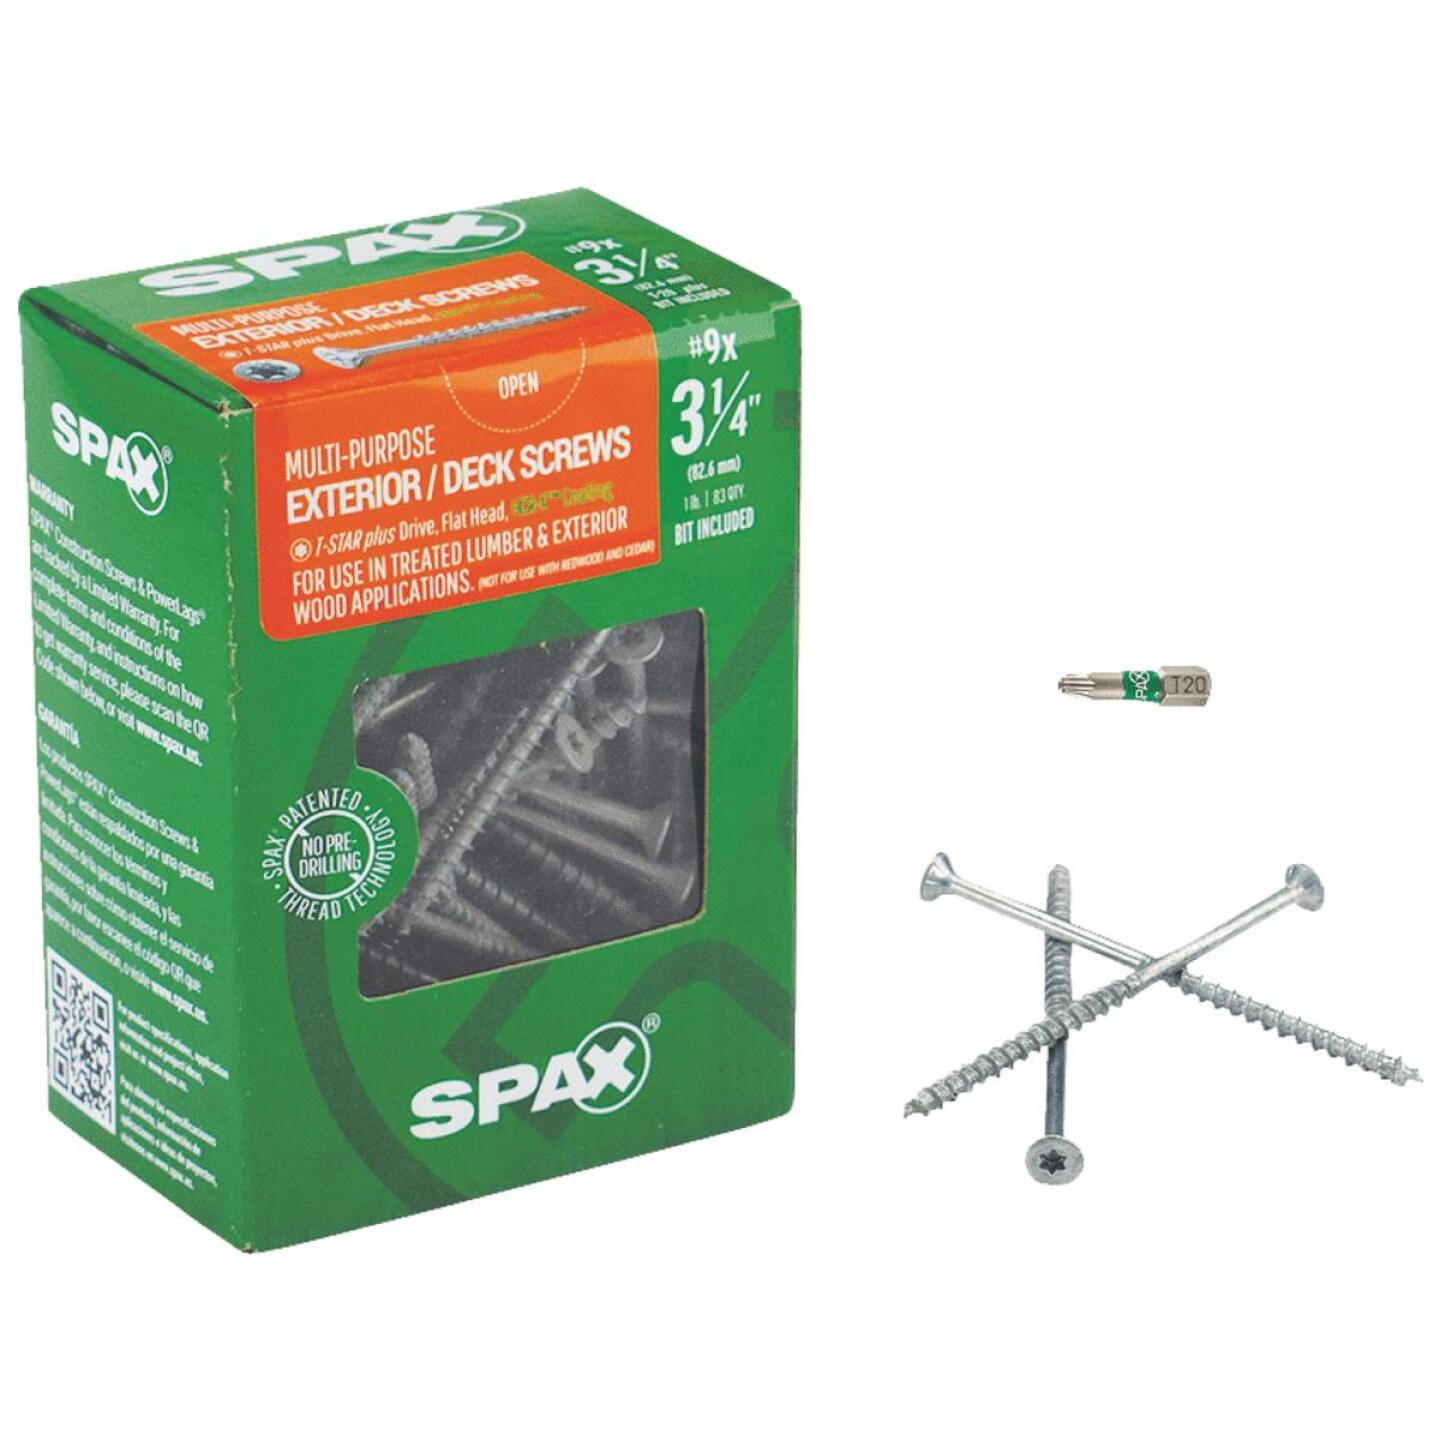 Spax #9 x 3-1/4 In. Flat Head Exterior Multi-Material Construction Screw (1 Lb. Box) Image 1